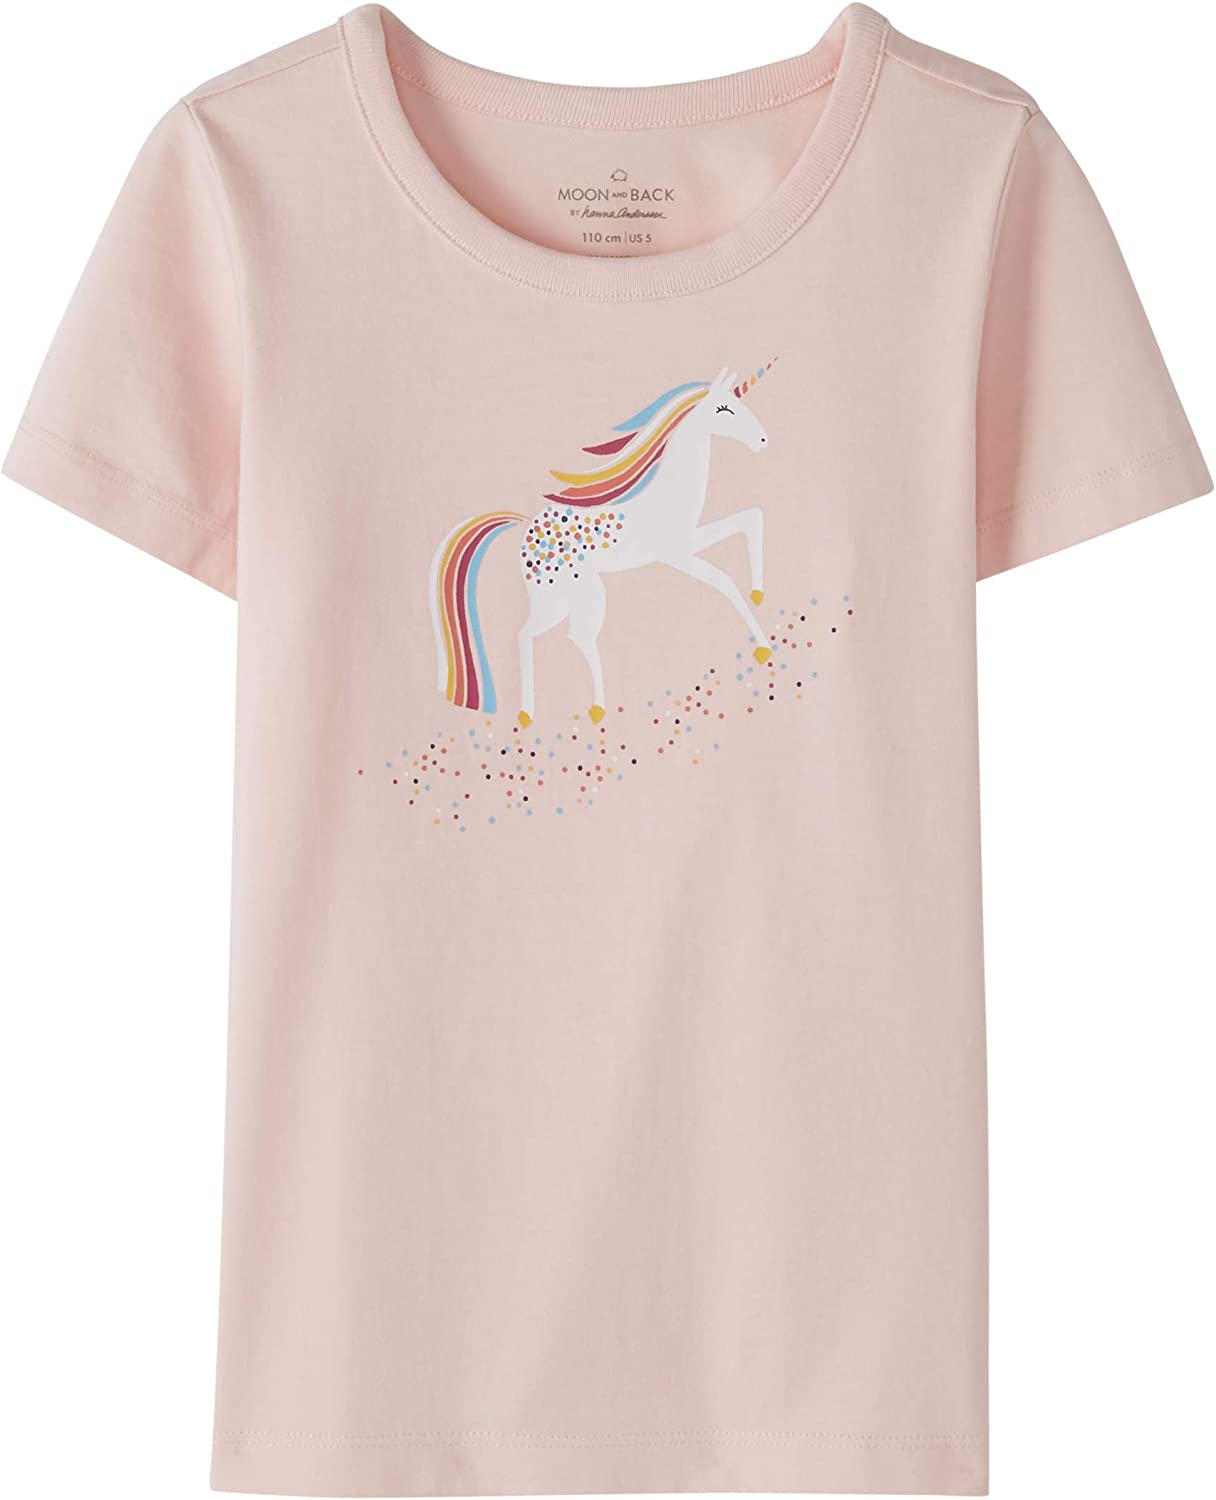 Moon and Back by Hanna Andersson Unisex-Child Girls Short Sleeve Graphic Tee T-Shirt